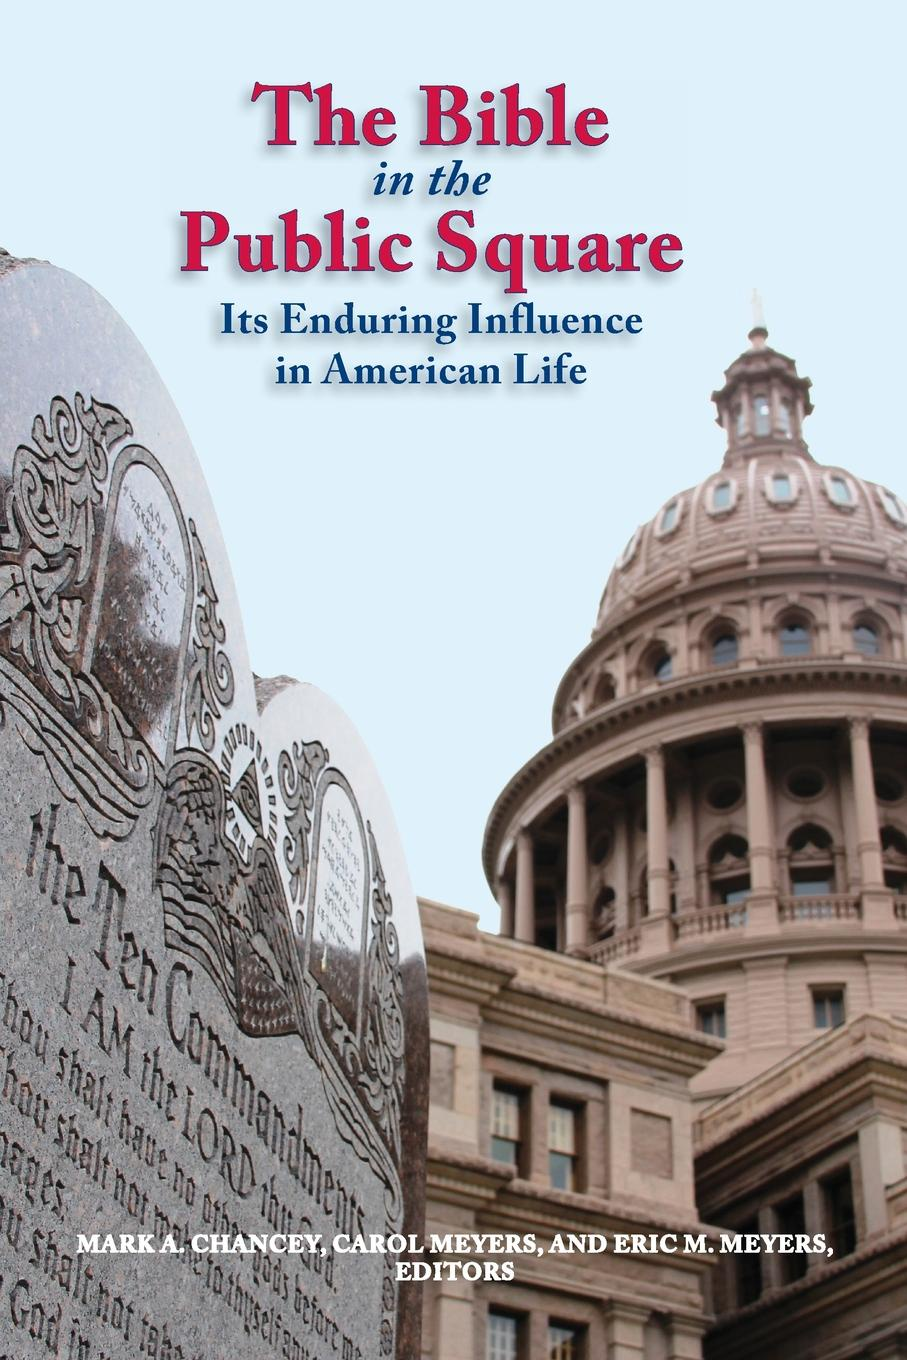 Mark Chancey, Carol Meyers, Eric Meyers The Bible in the Public Square. Its Enduring Influence in American Life ernst von dobschütz the influence of the bible on civilisation